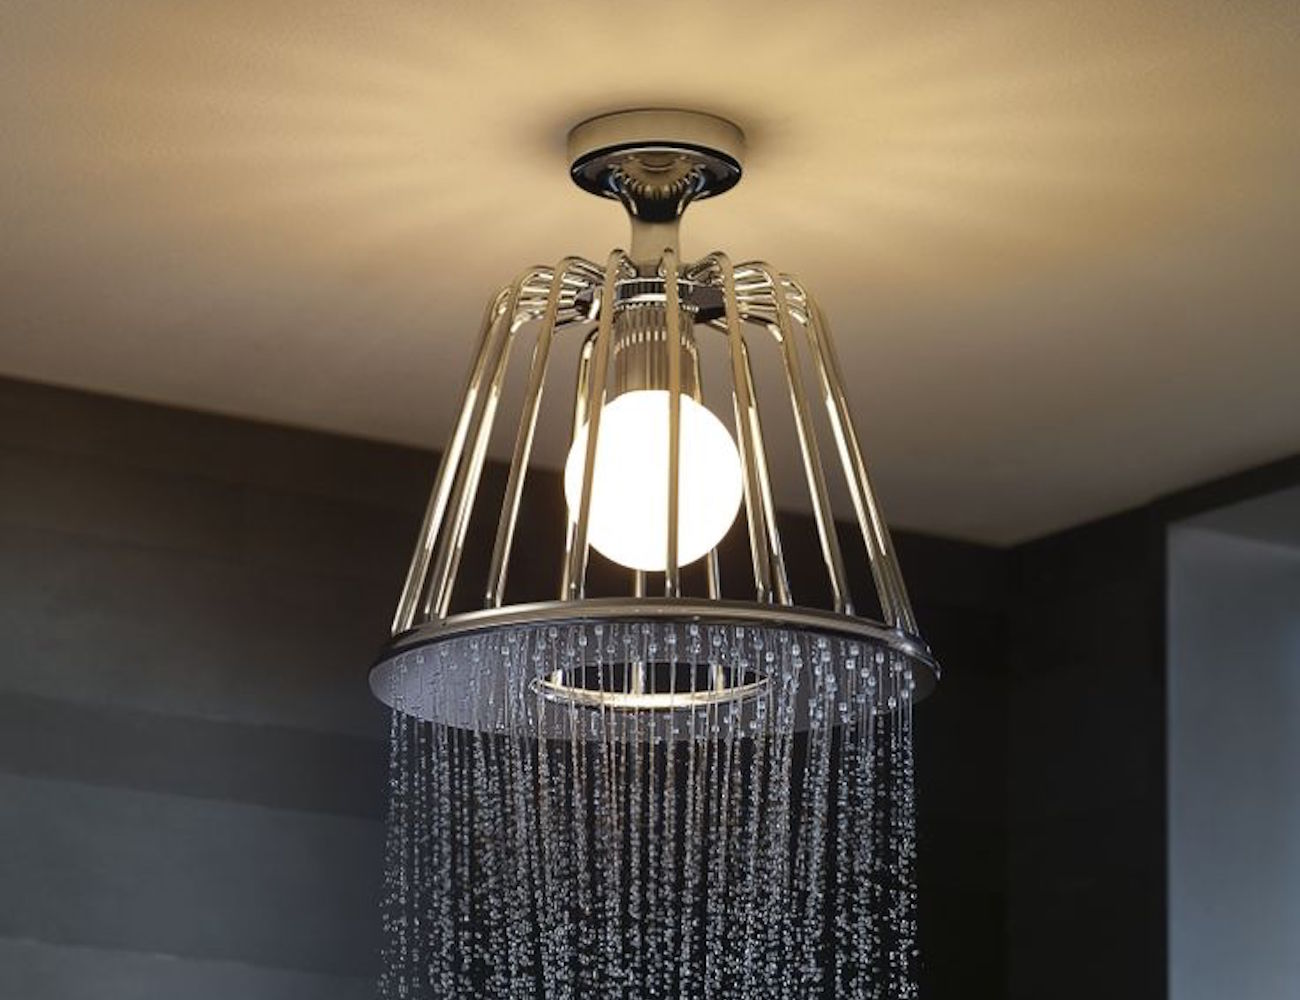 Lampshower – A Sophisticated Shower Head